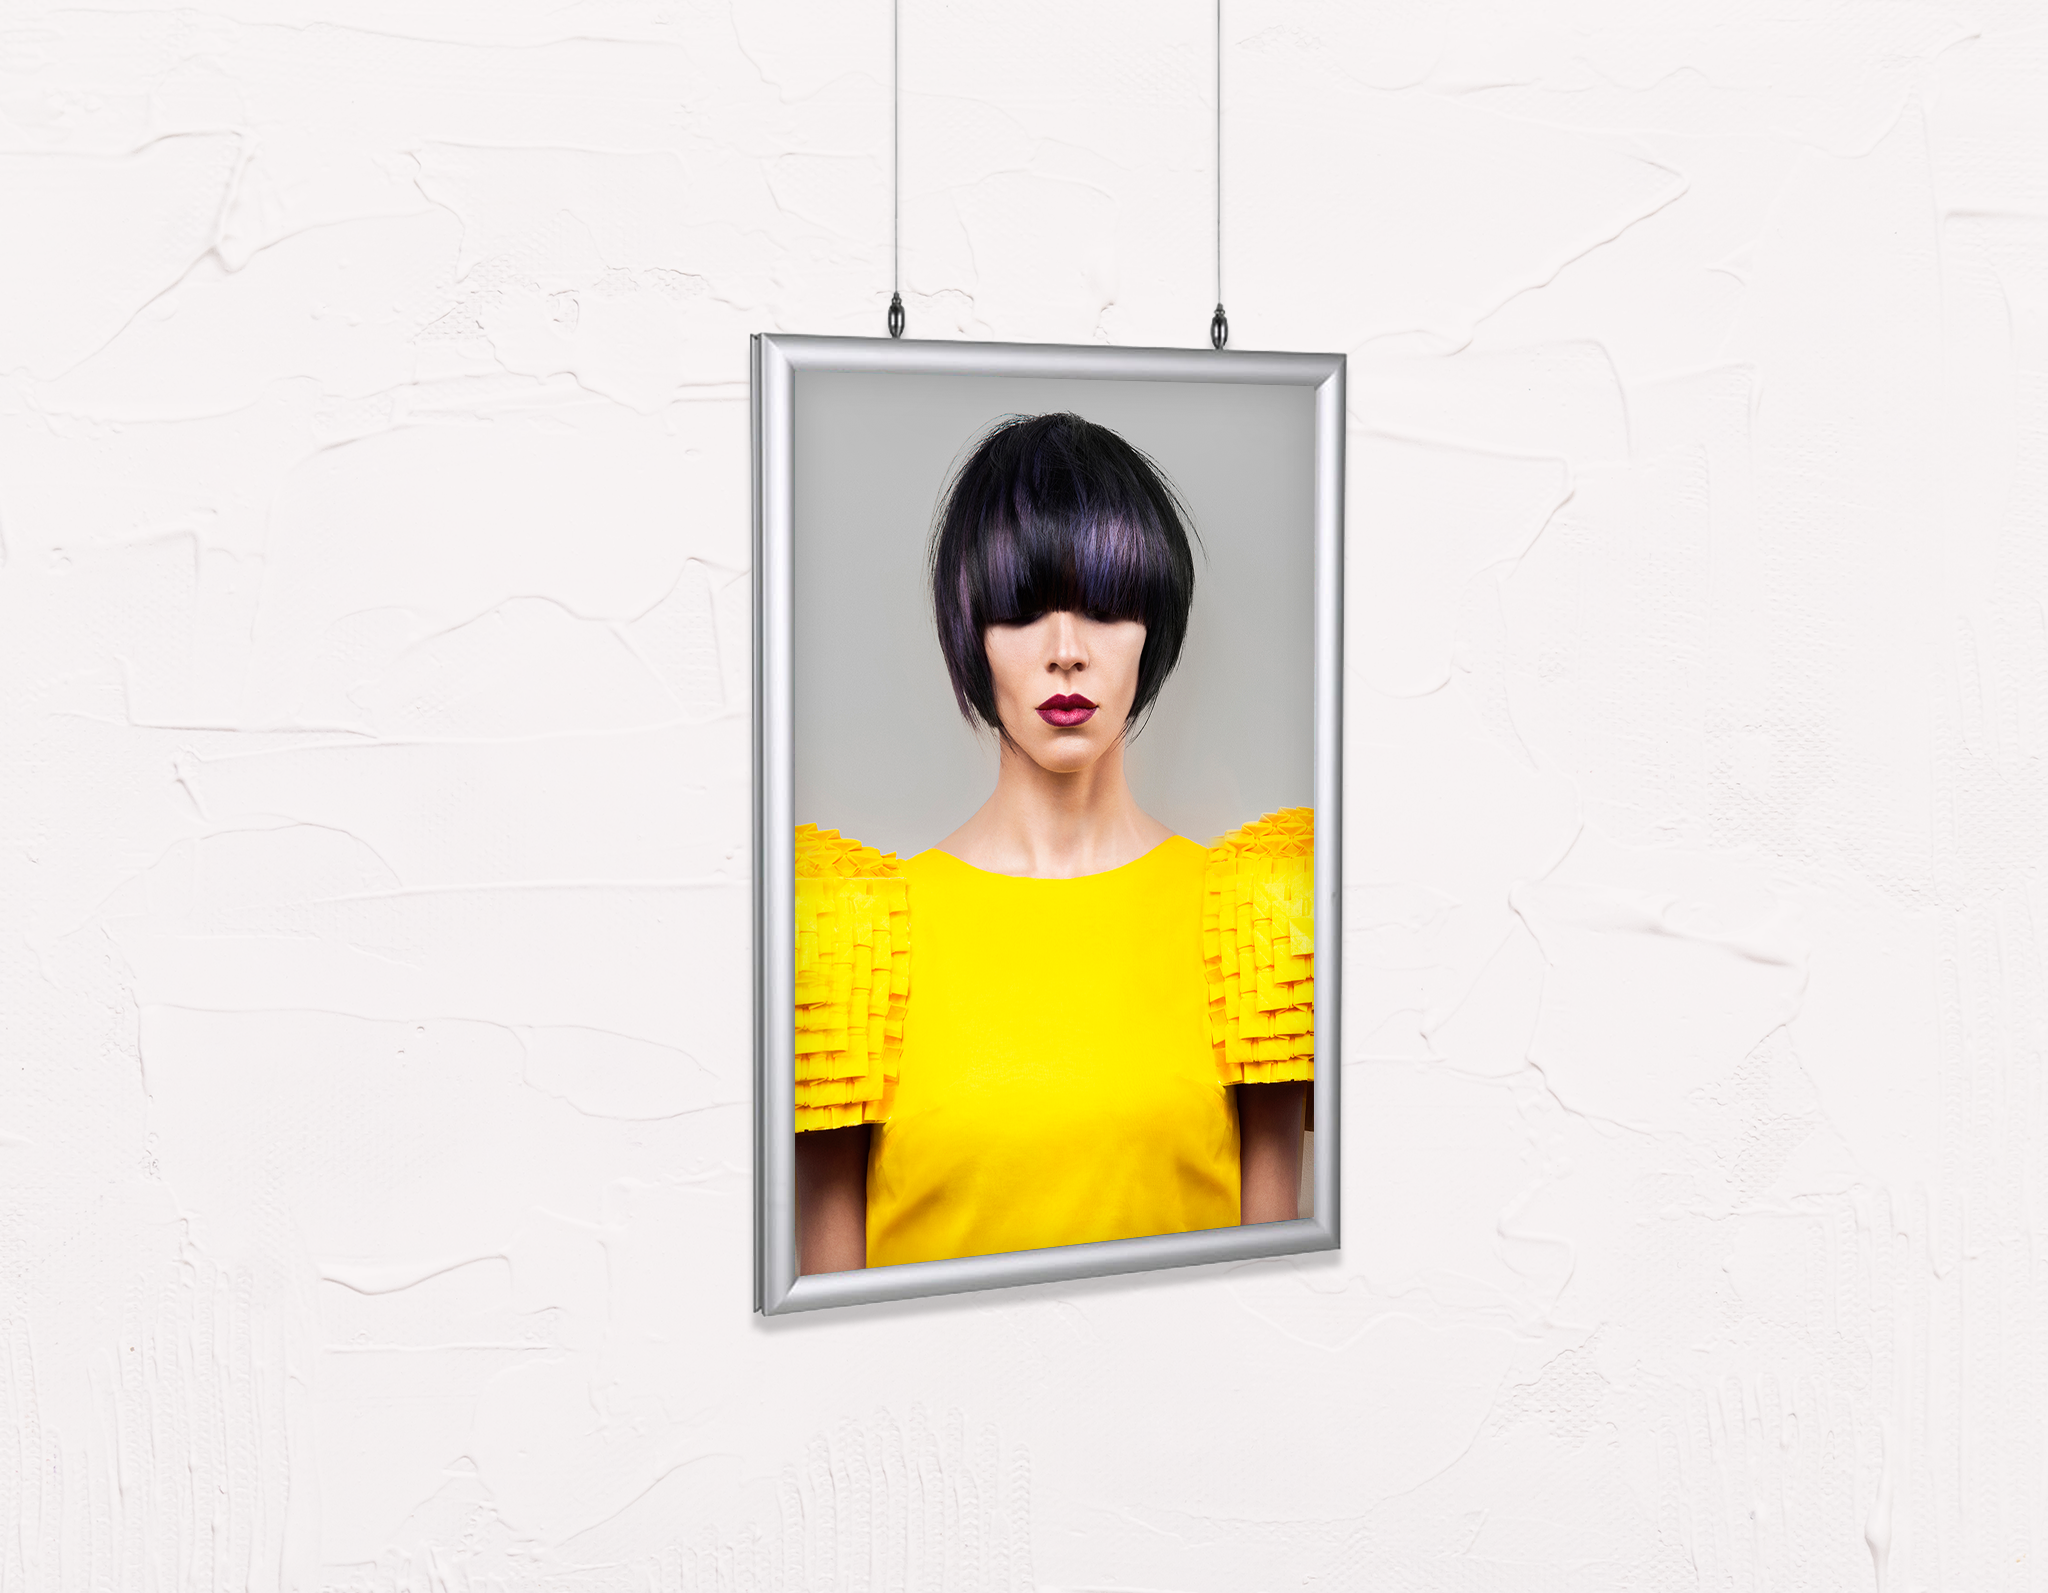 Salon Poster Click Frames, Double-Sided: Woman Front with Bob Hairstyle with Purple Highlights